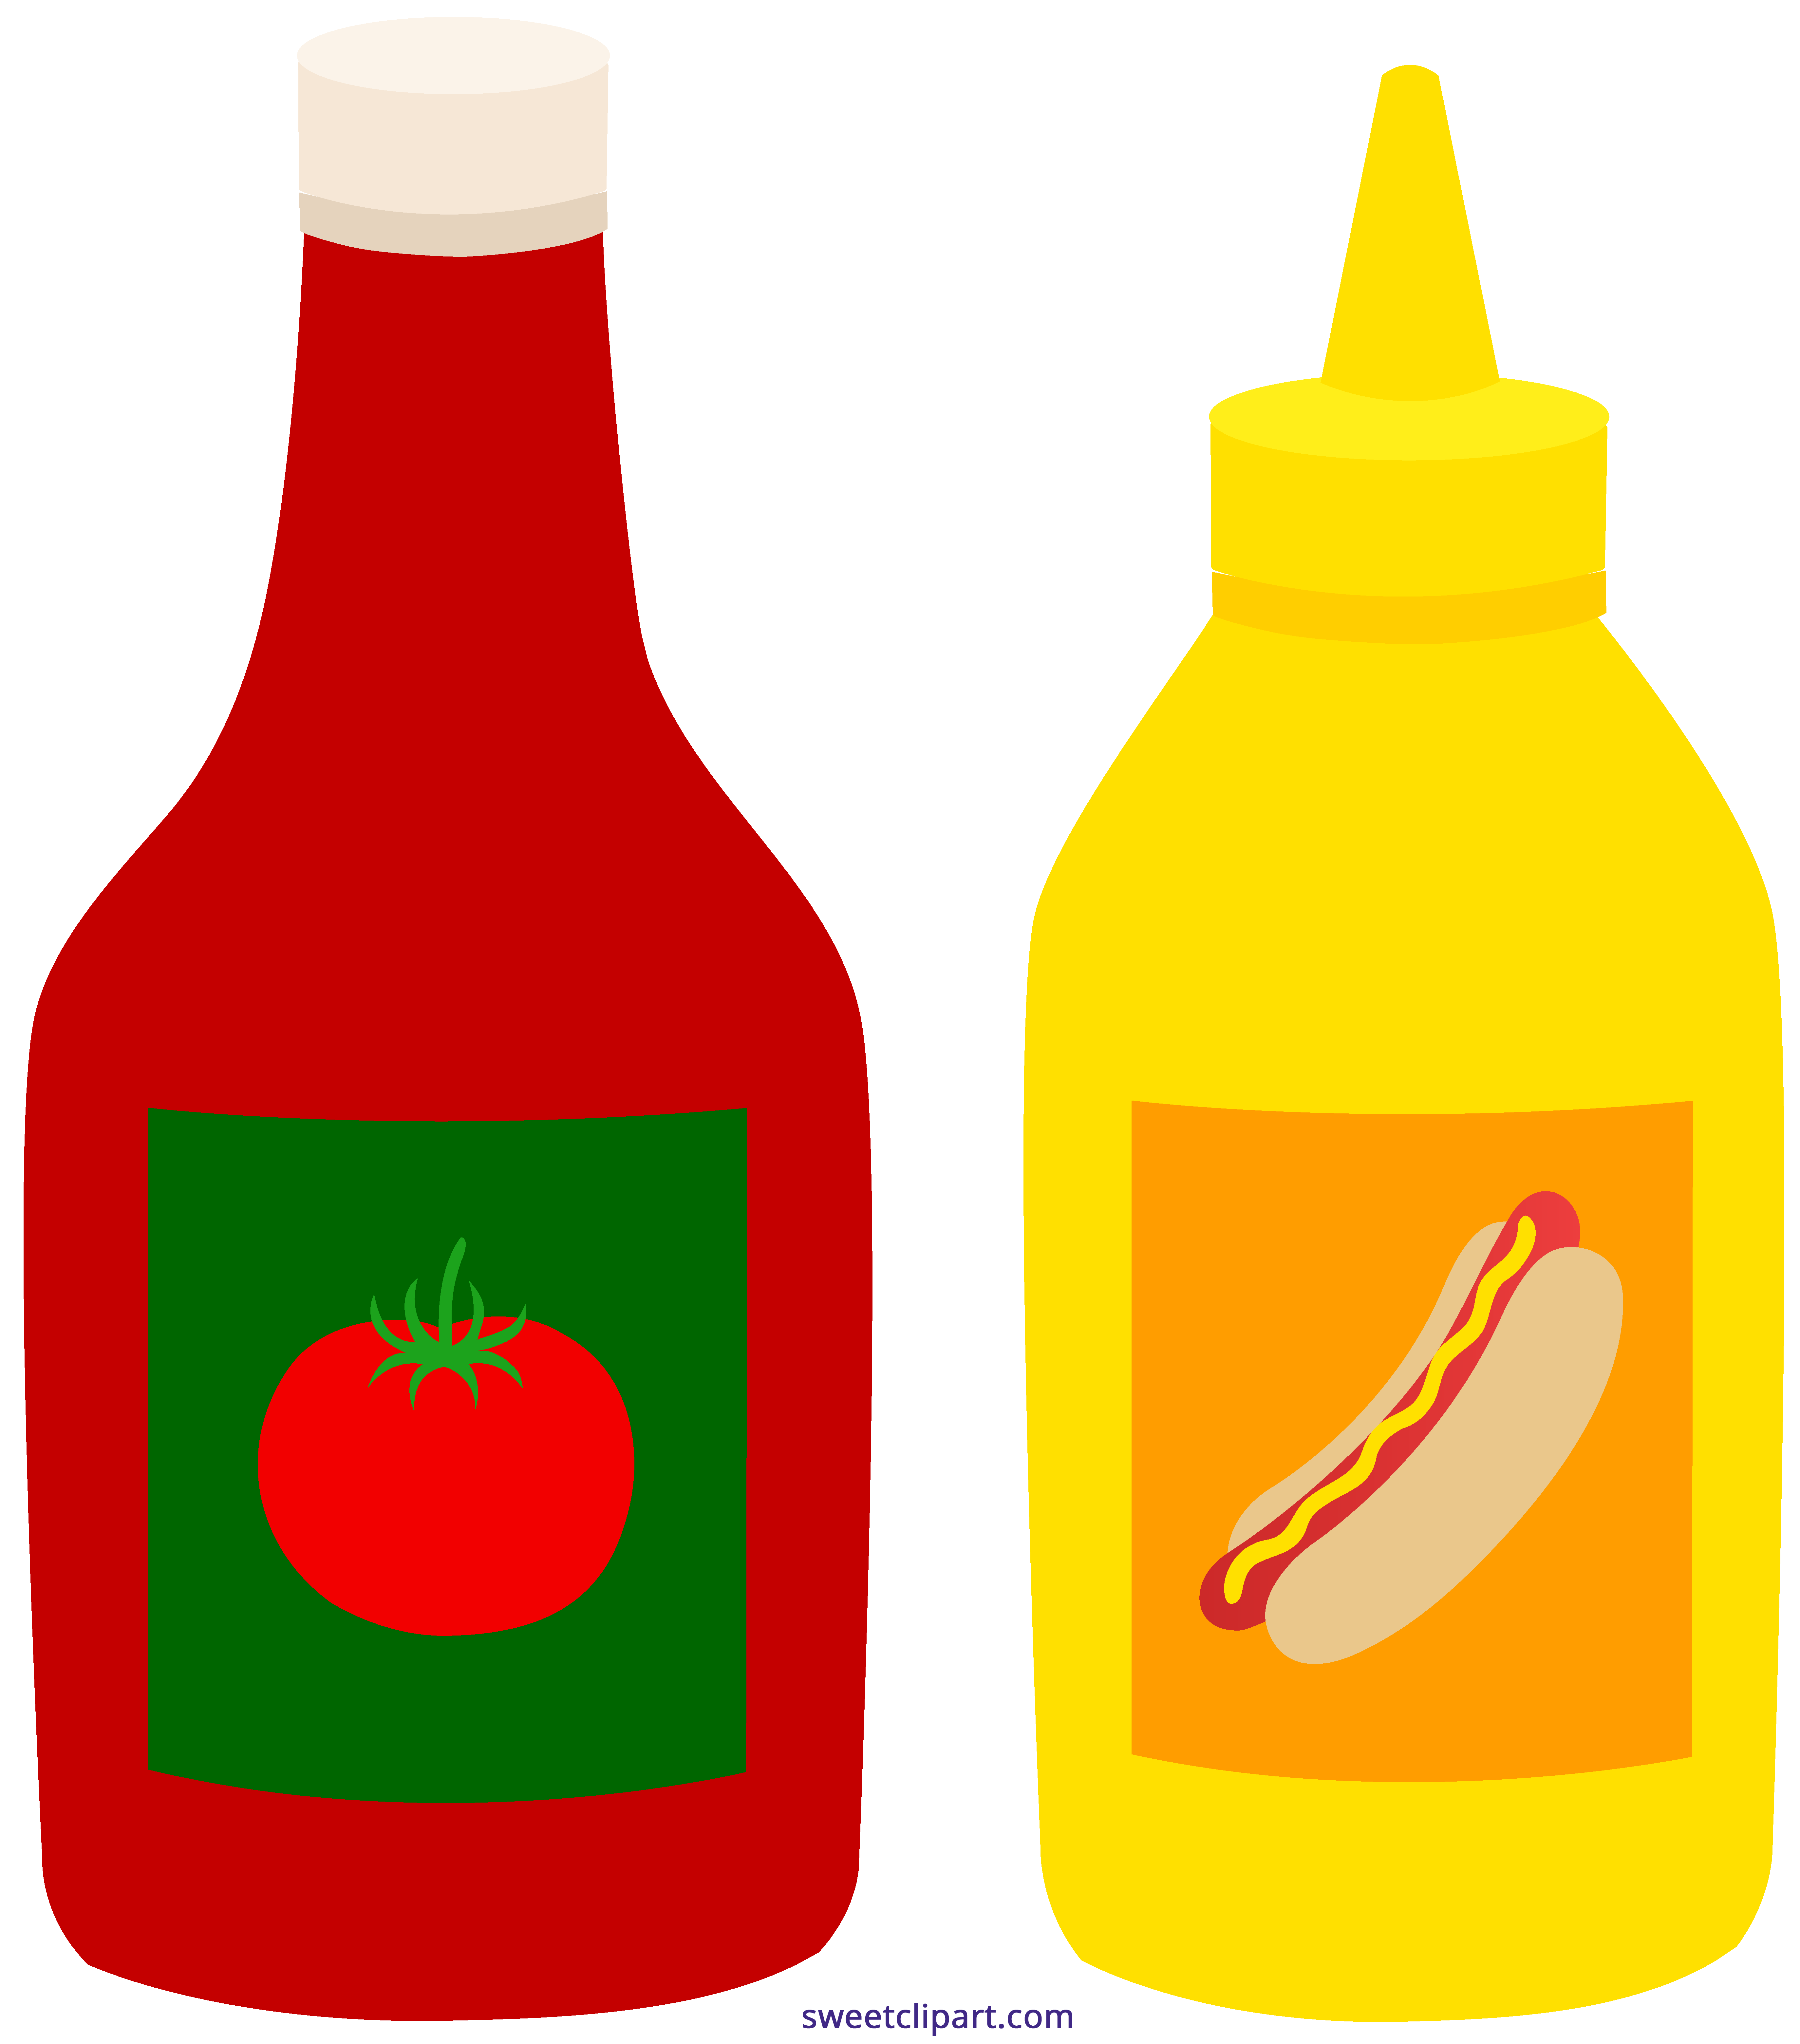 Ketchup clipart, Ketchup Transparent FREE for download on.